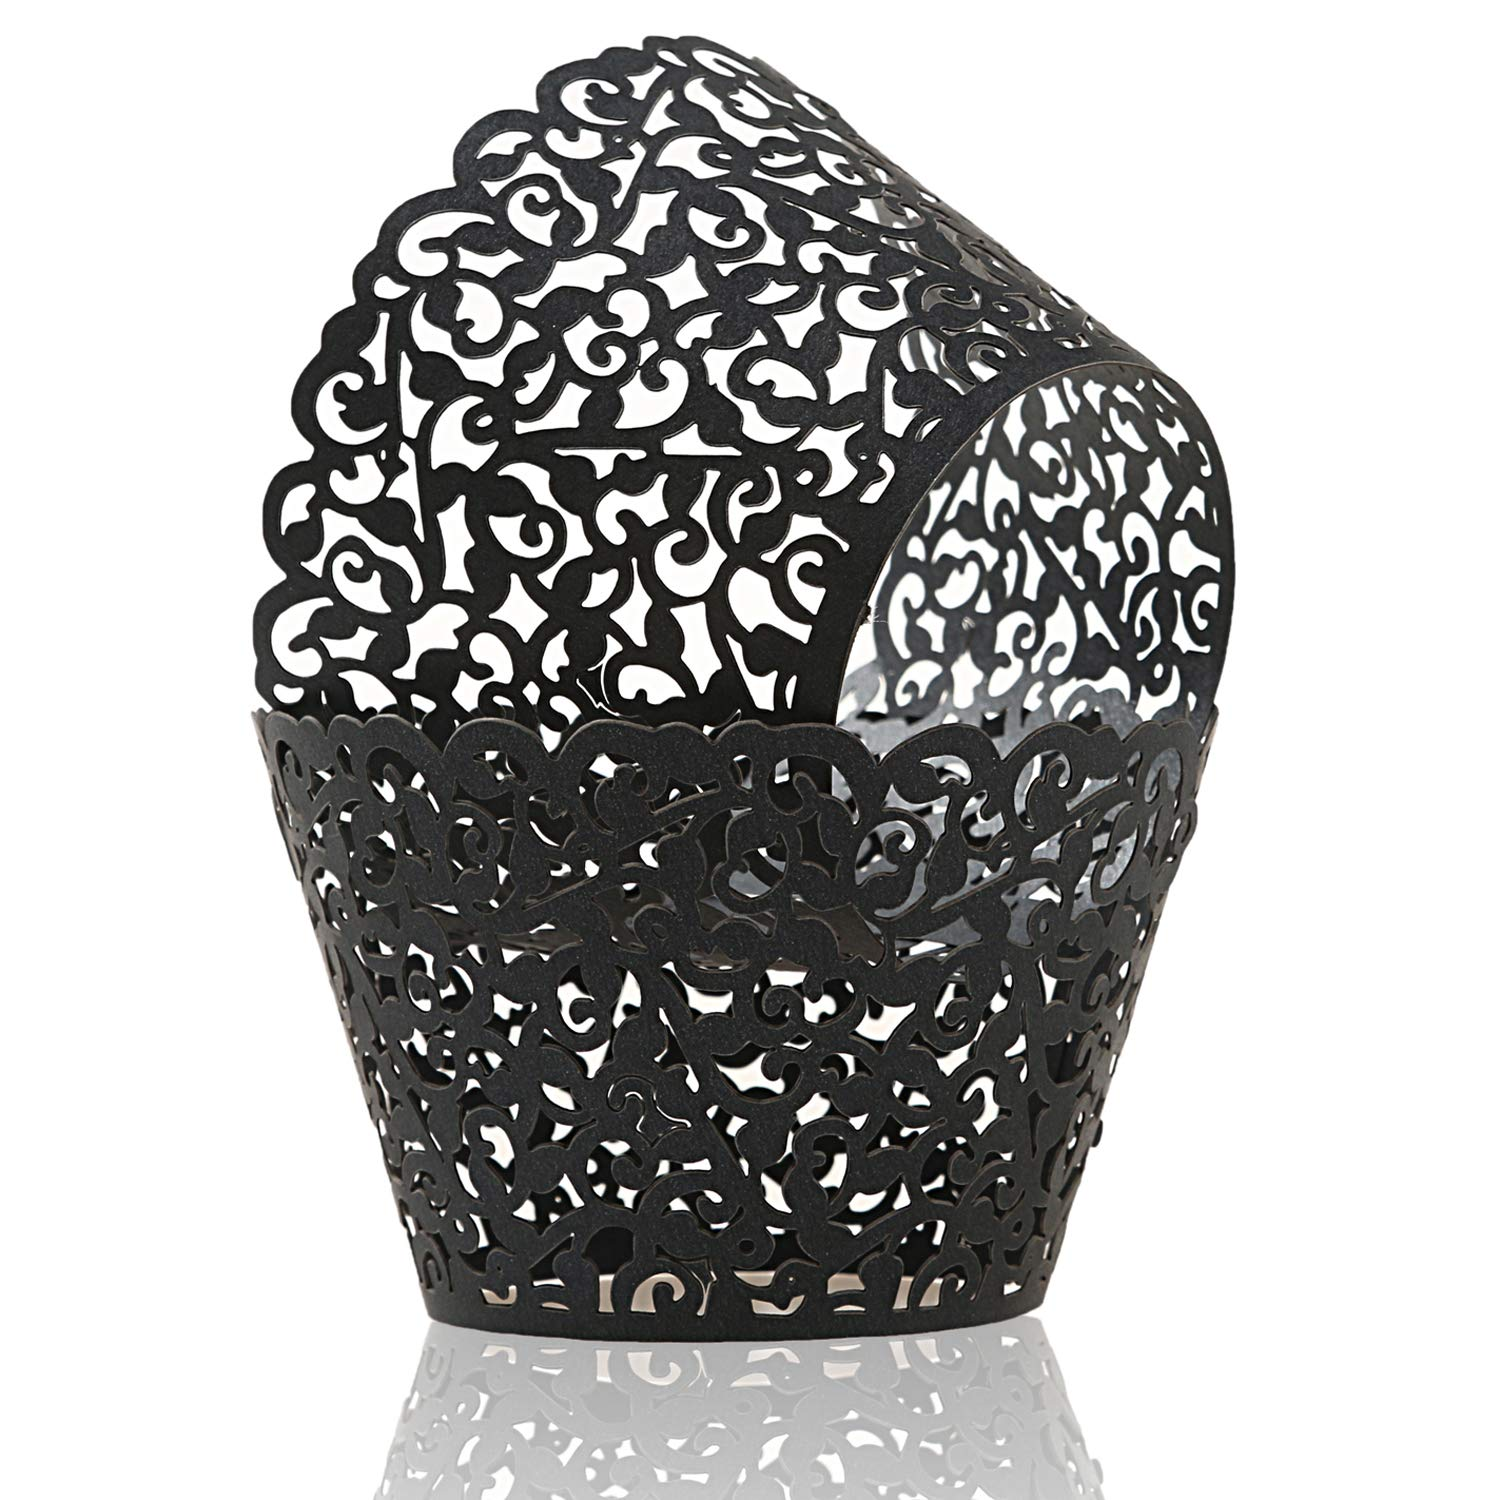 KPOSIYA Pack of 120 Cupcake Wrappers Artistic Bake Cake Paper Cups Vine Designed Laser Cut Cupcake Wraps Baking Cup Muffin Case Trays for Wedding Baby Shower Party Birthday Decoration (120, Black)